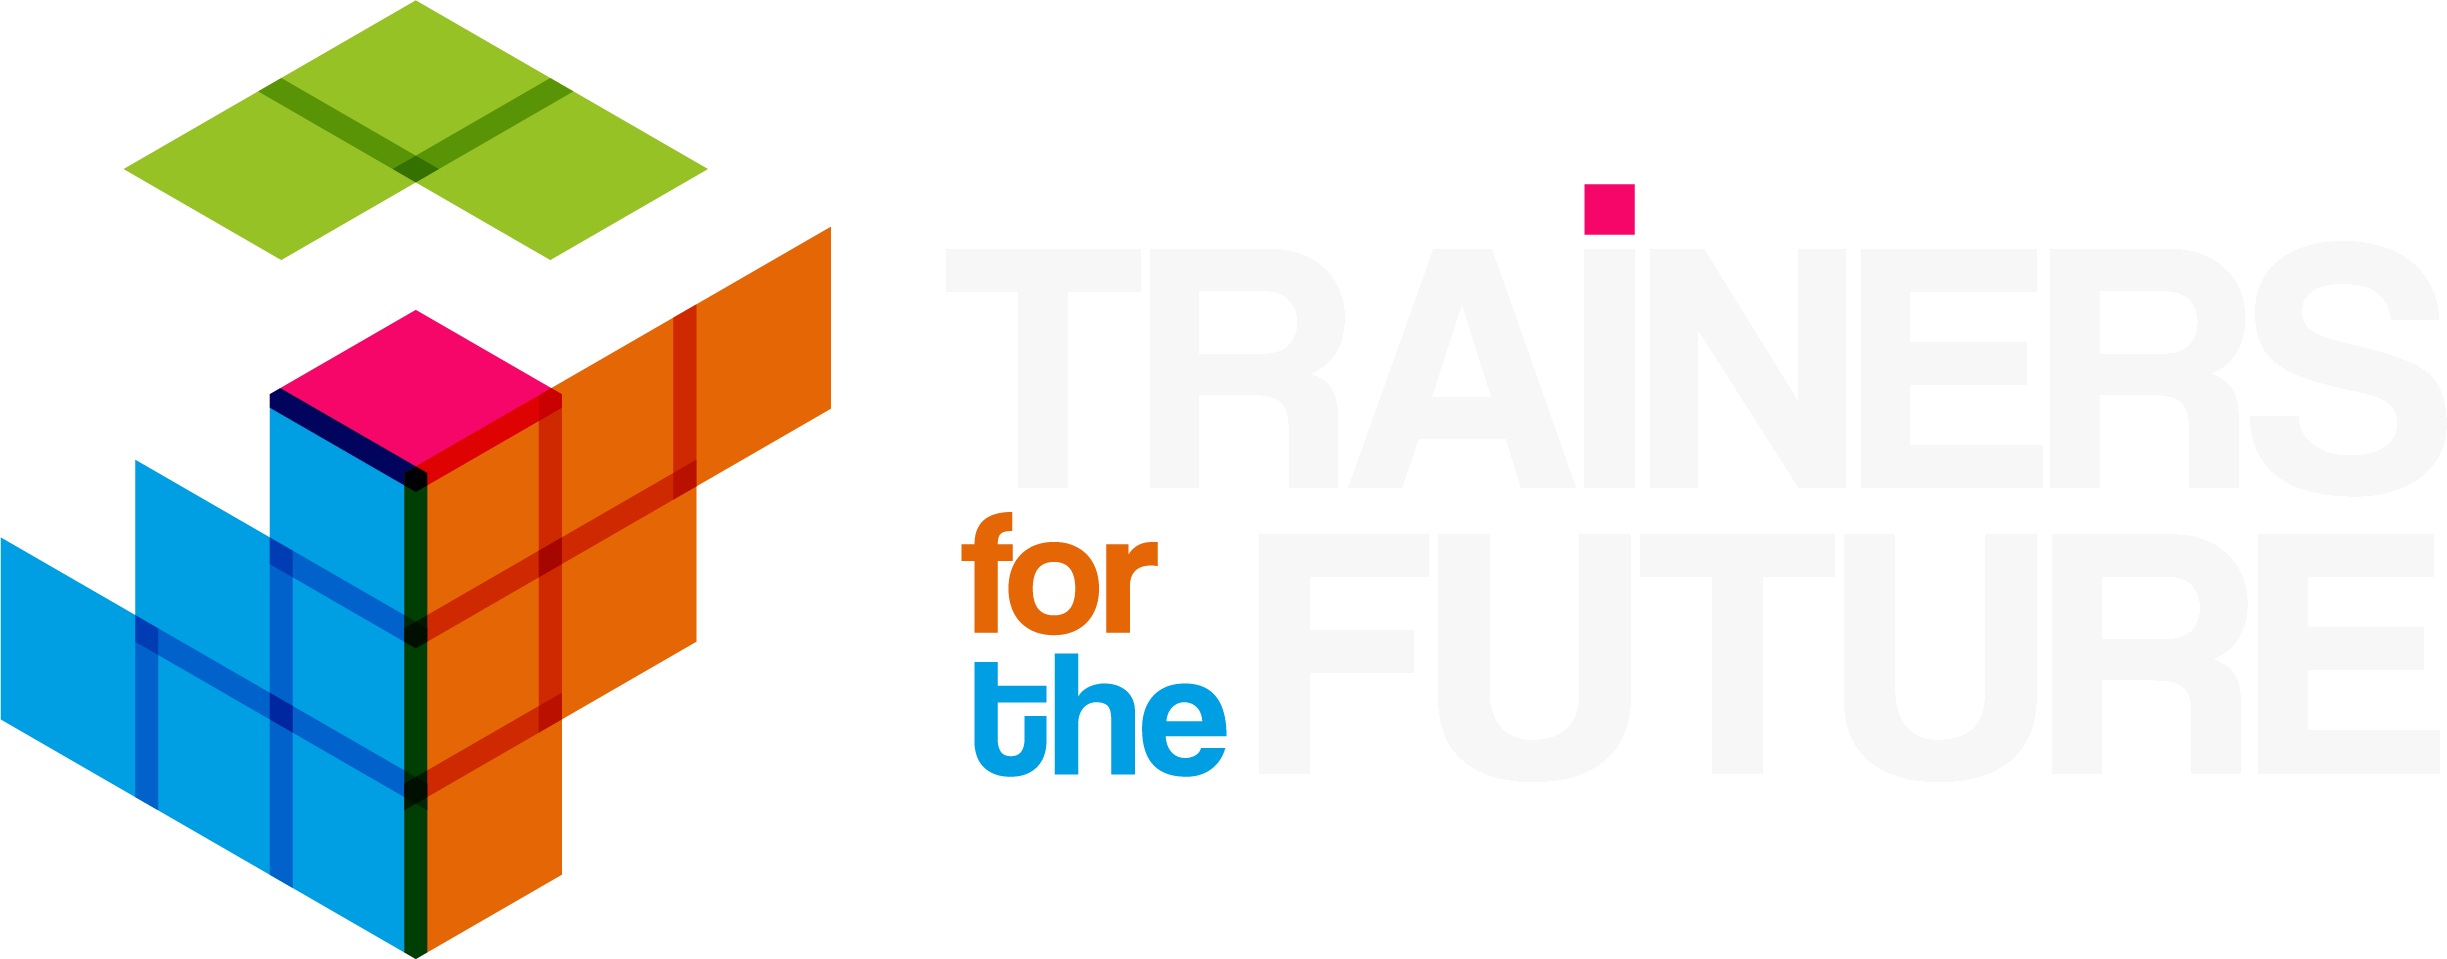 Trainers for the Future